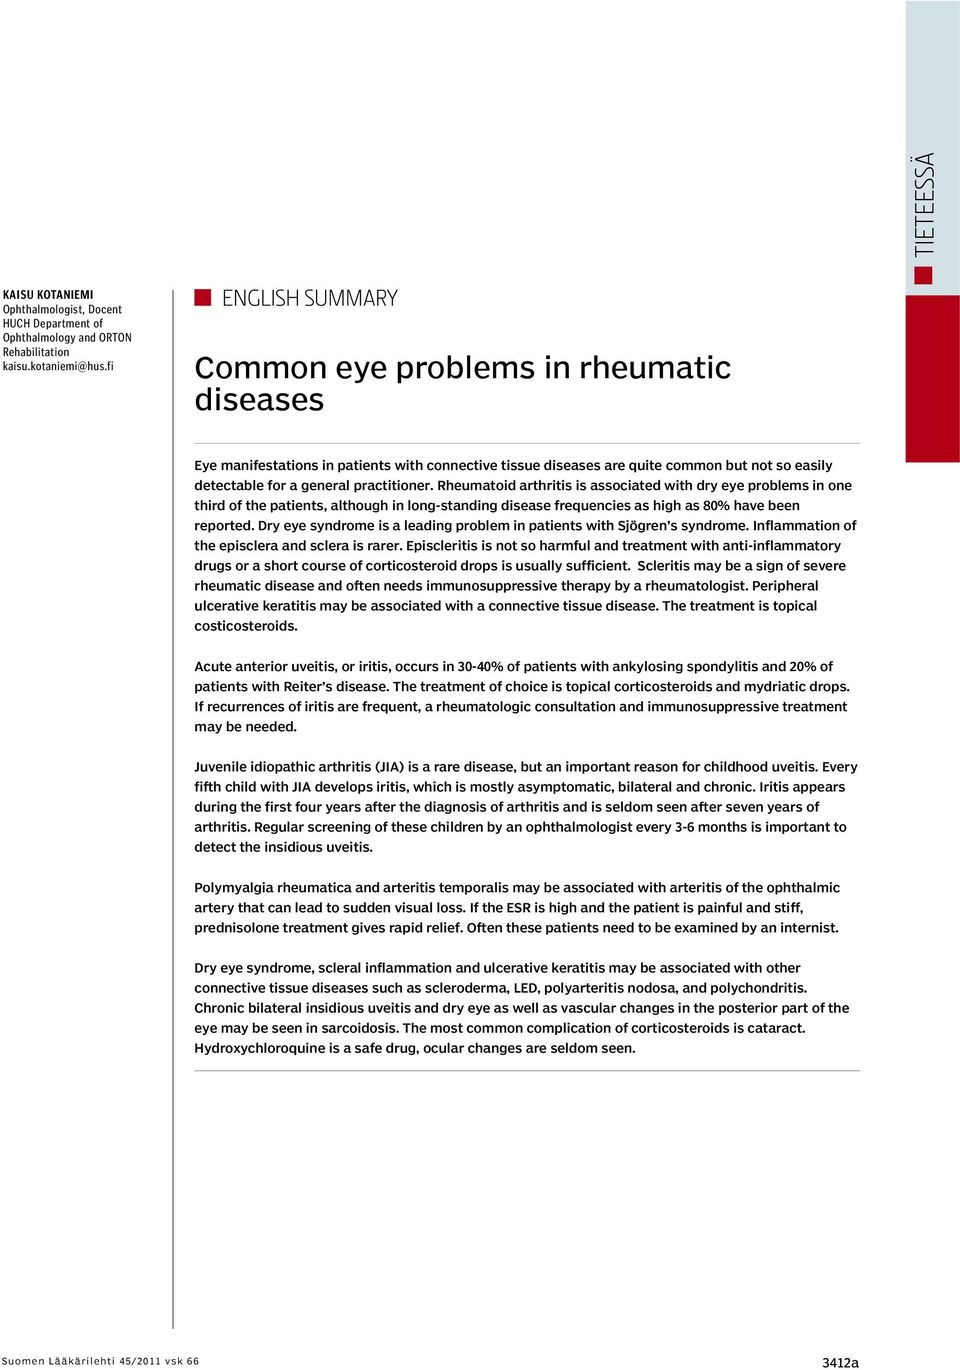 Rheumatoid arthritis is associated with dry eye problems in one third of the patients, although in long-standing disease frequencies as high as 80% have been reported.